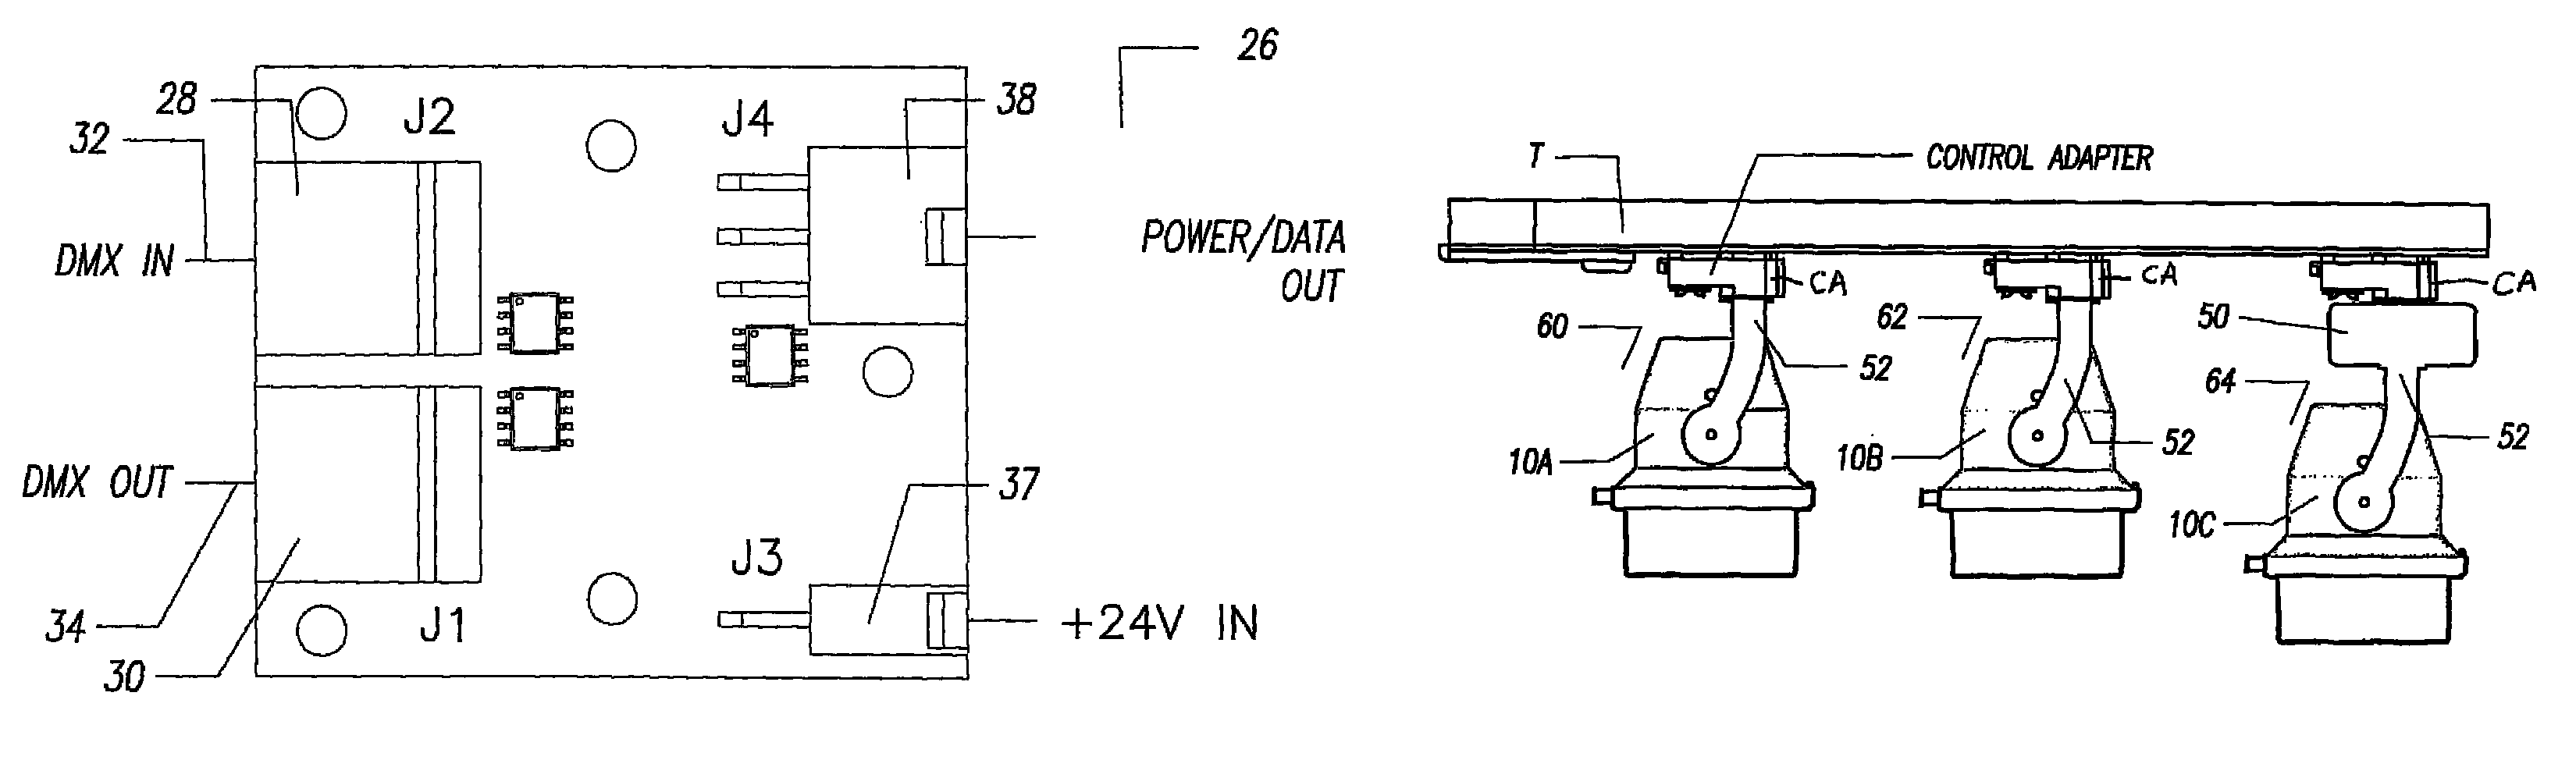 Patent Us8344655 Power And Data Track Lighting System